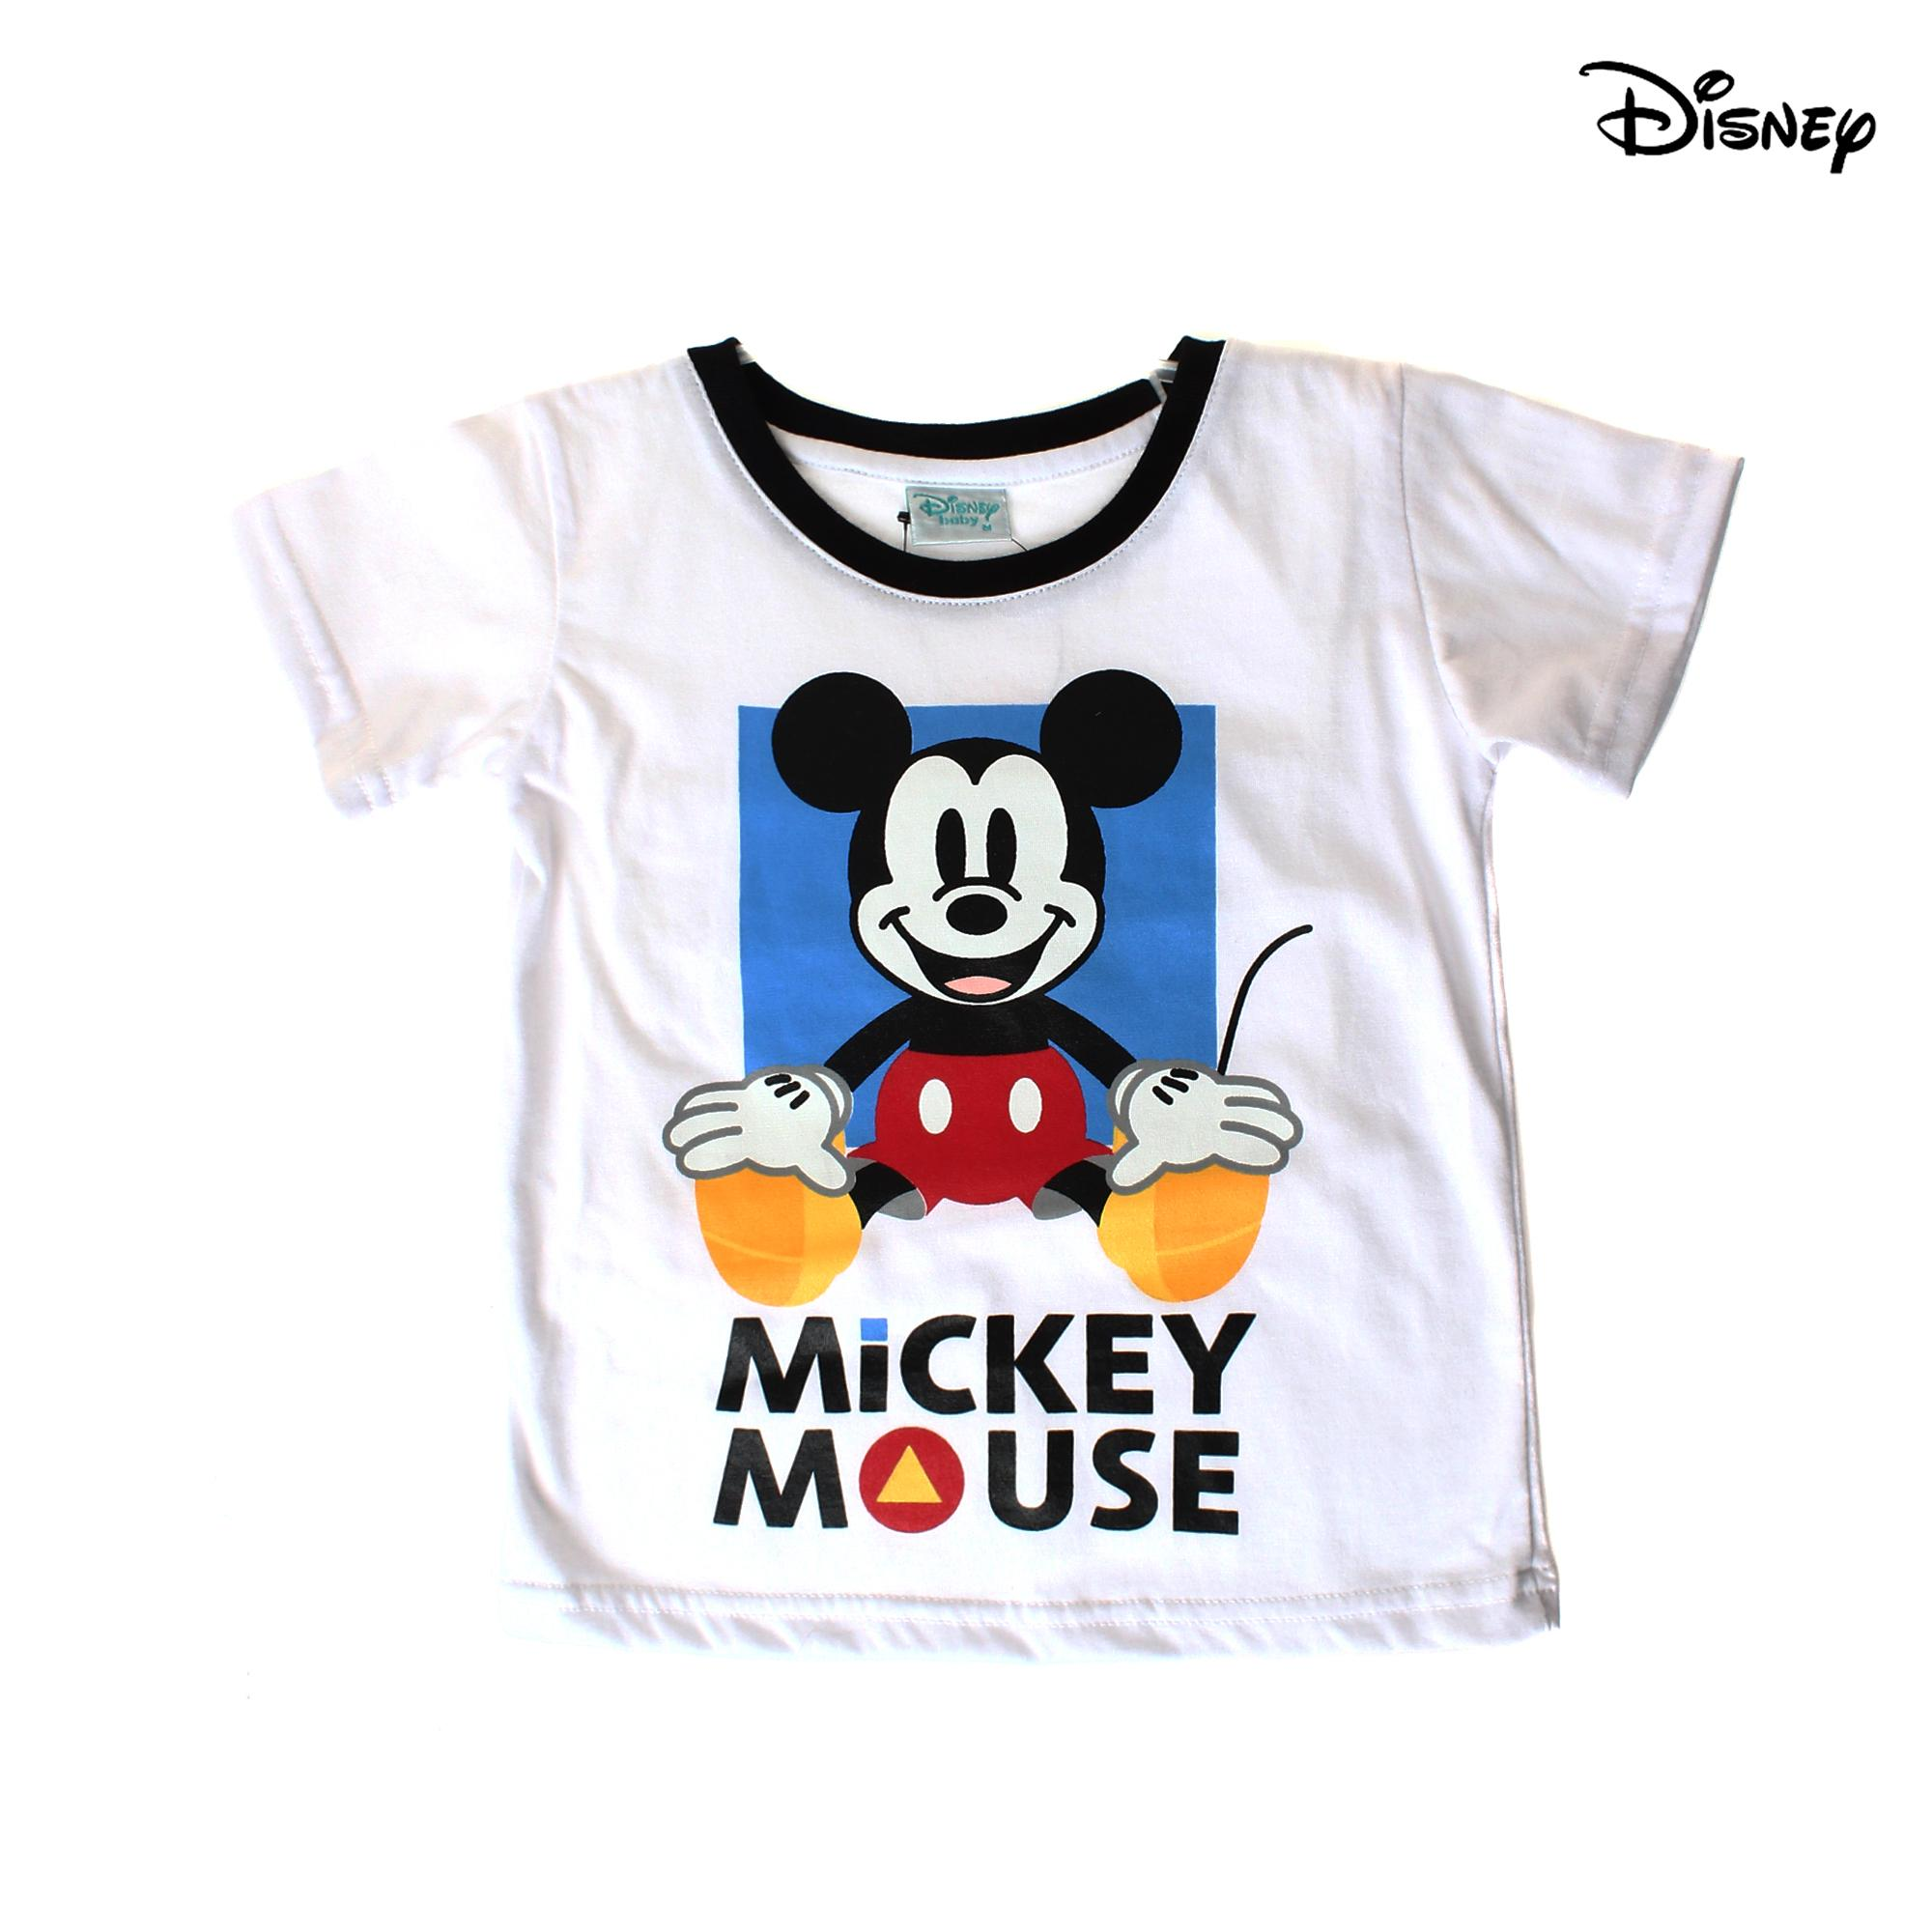 Boys Tank Tops For Sale Baby Online Brands Carters 3 Pieces Orange Mickey Mouse Disney Shirt